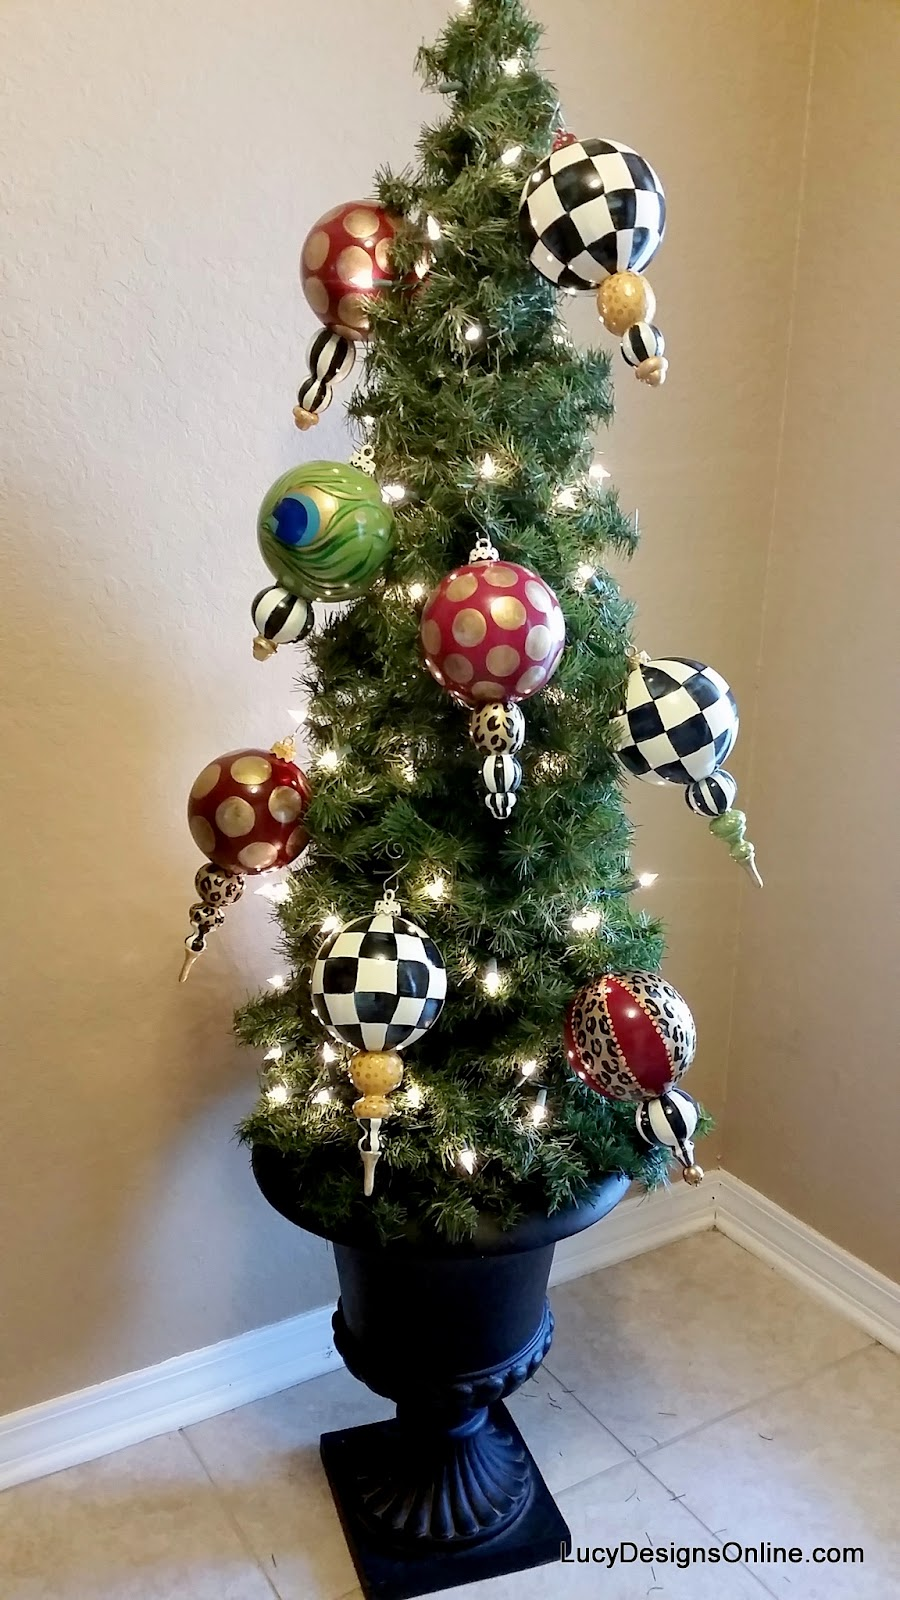 hand made and hand painted black and white checked ornaments